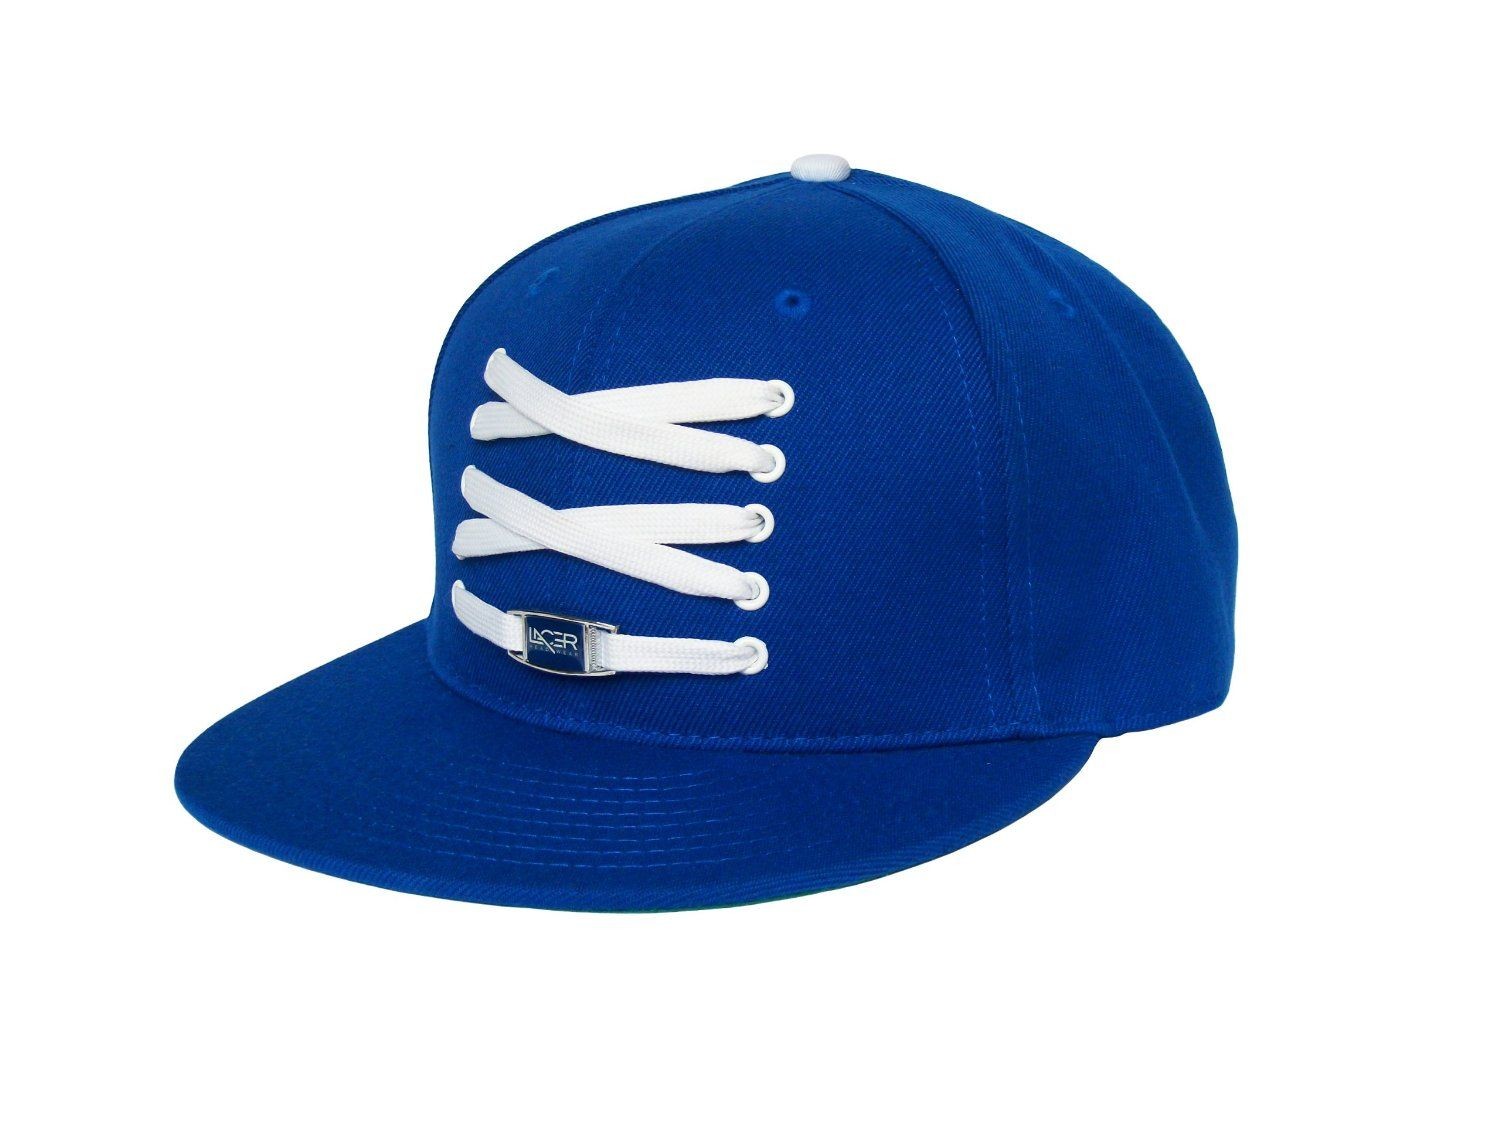 Lacer headwear cap limited edition blue dodgers f itted